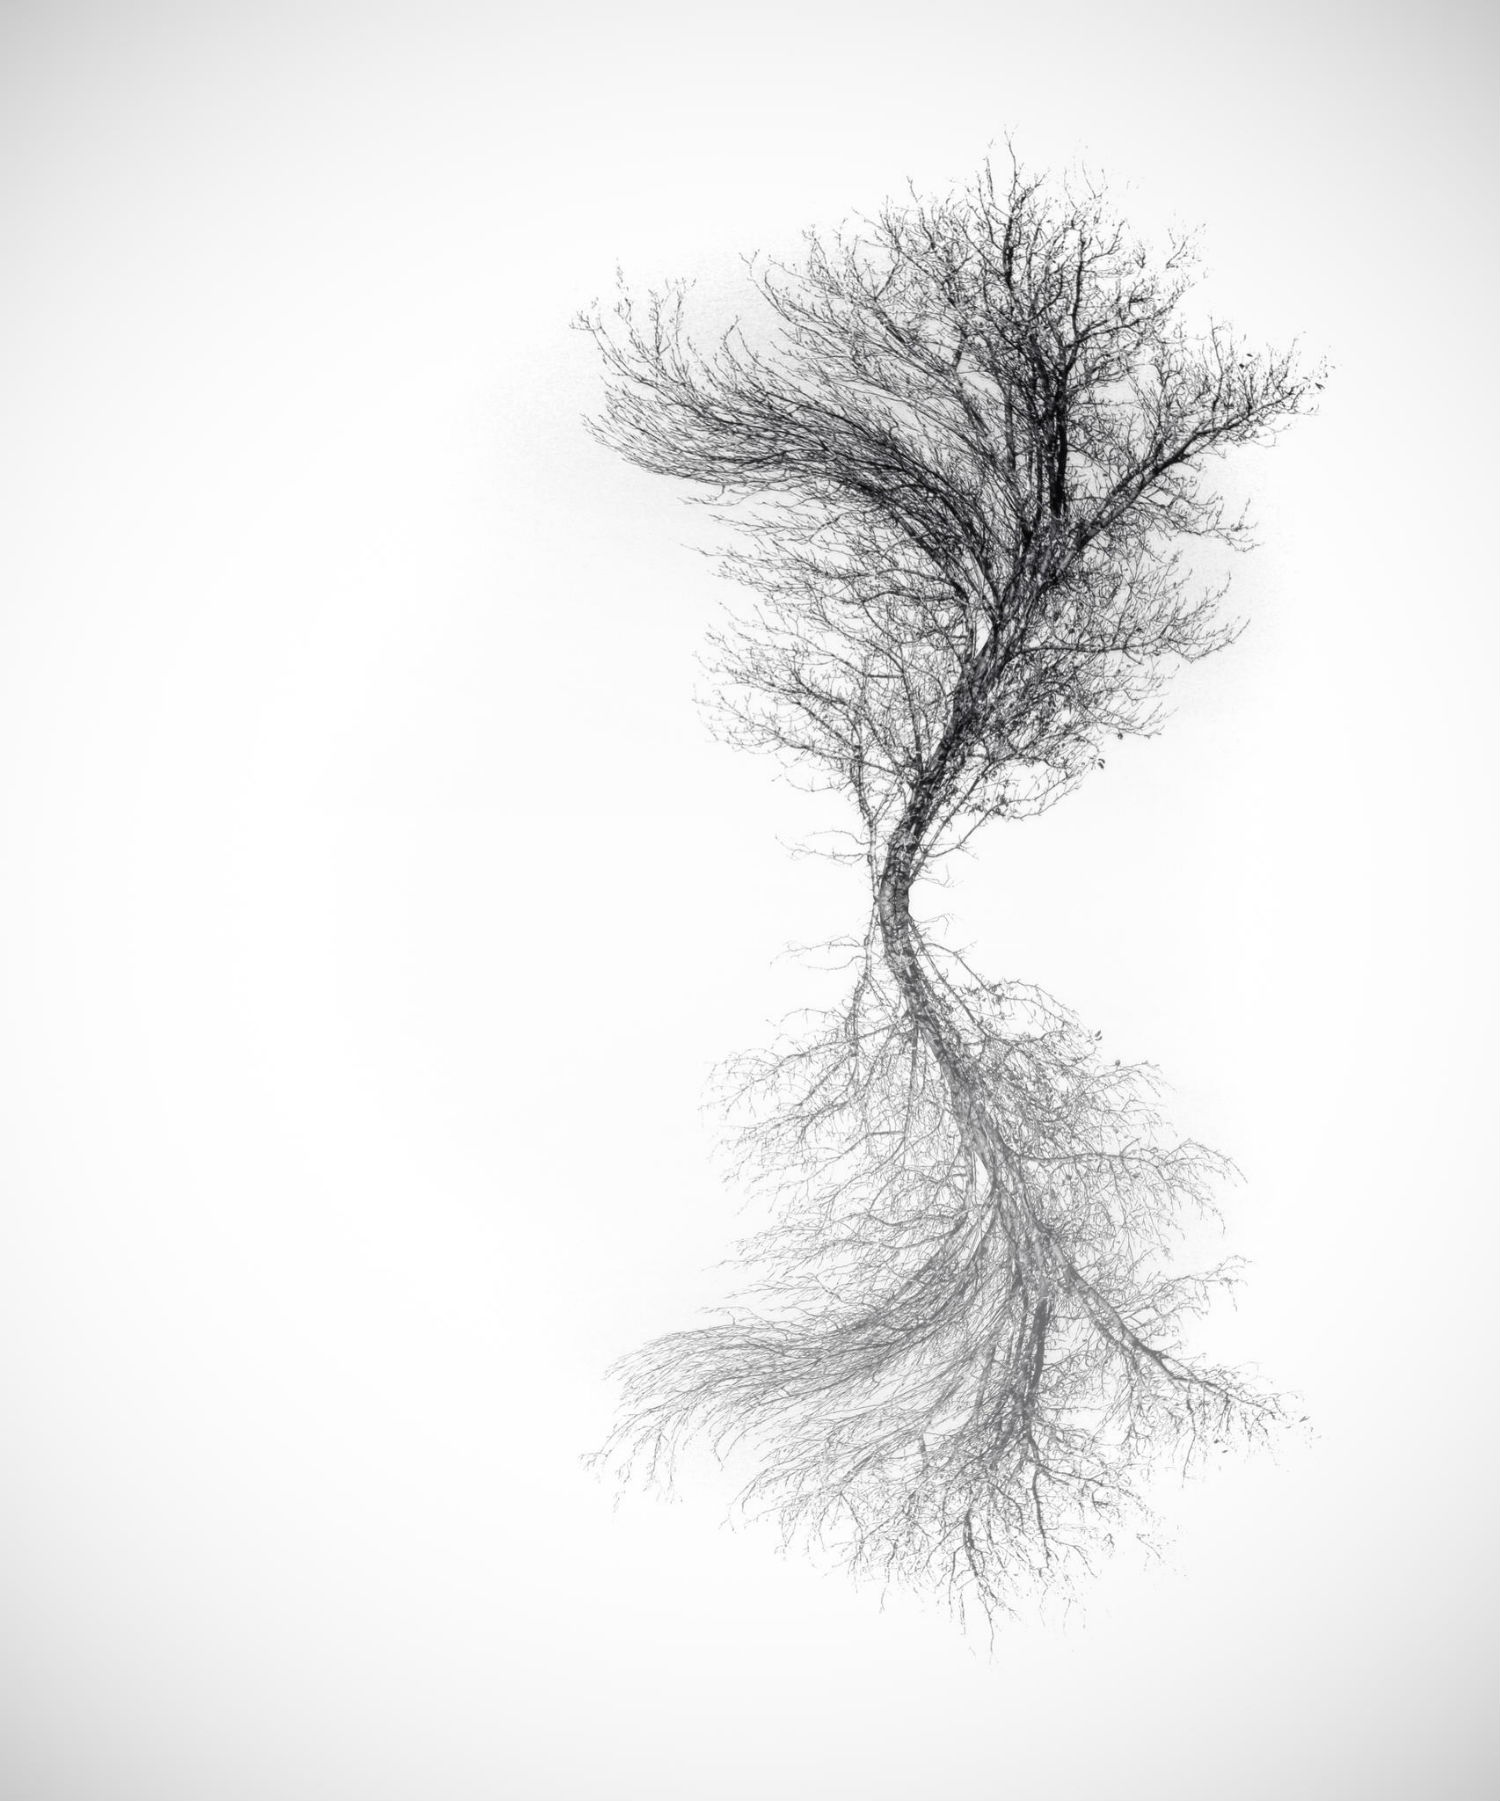 Adrienn Balaskó photography tree mirror image